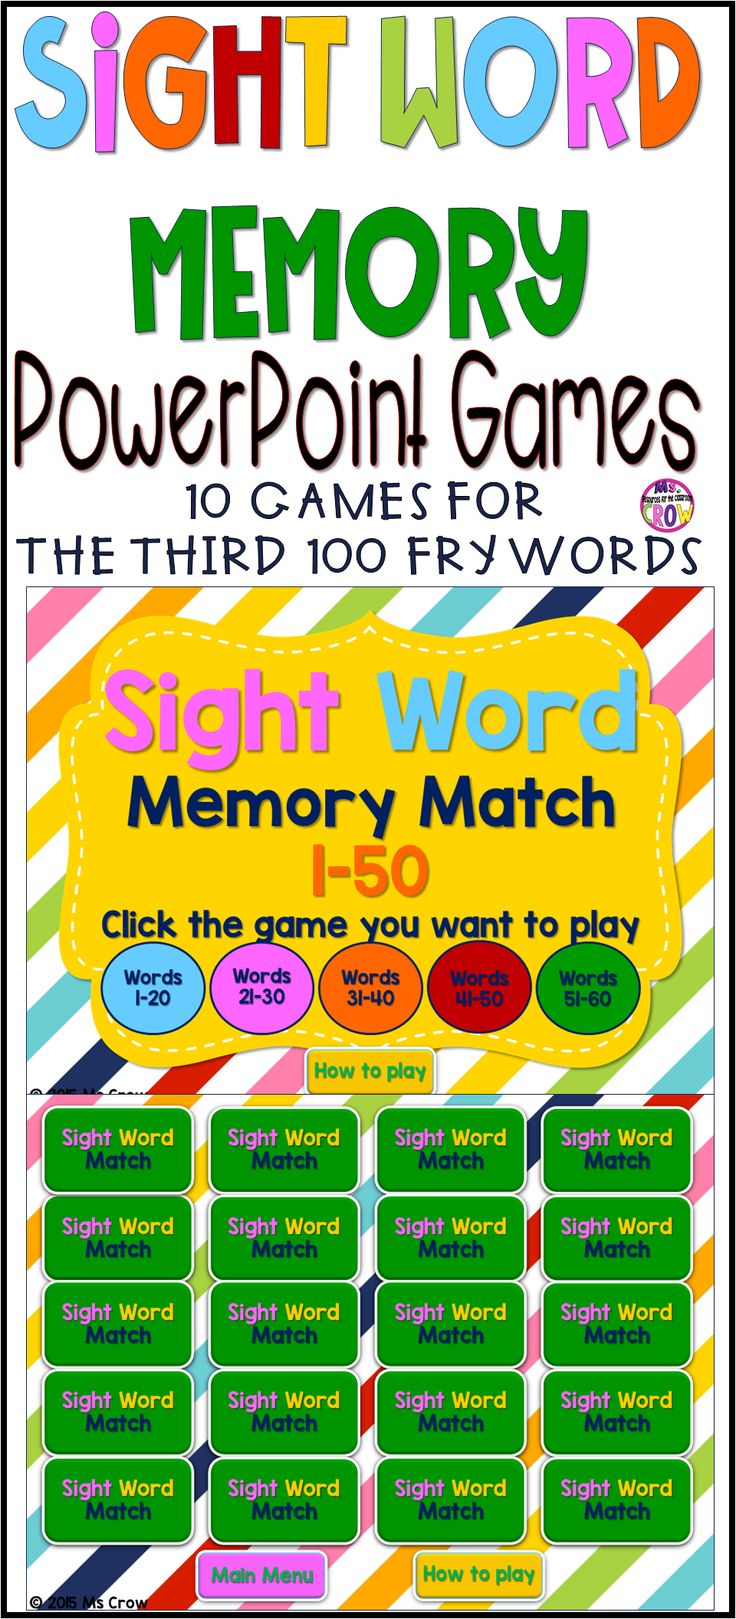 Sight Word Games 10 Games to practice the Third 100 Fry Sight Words